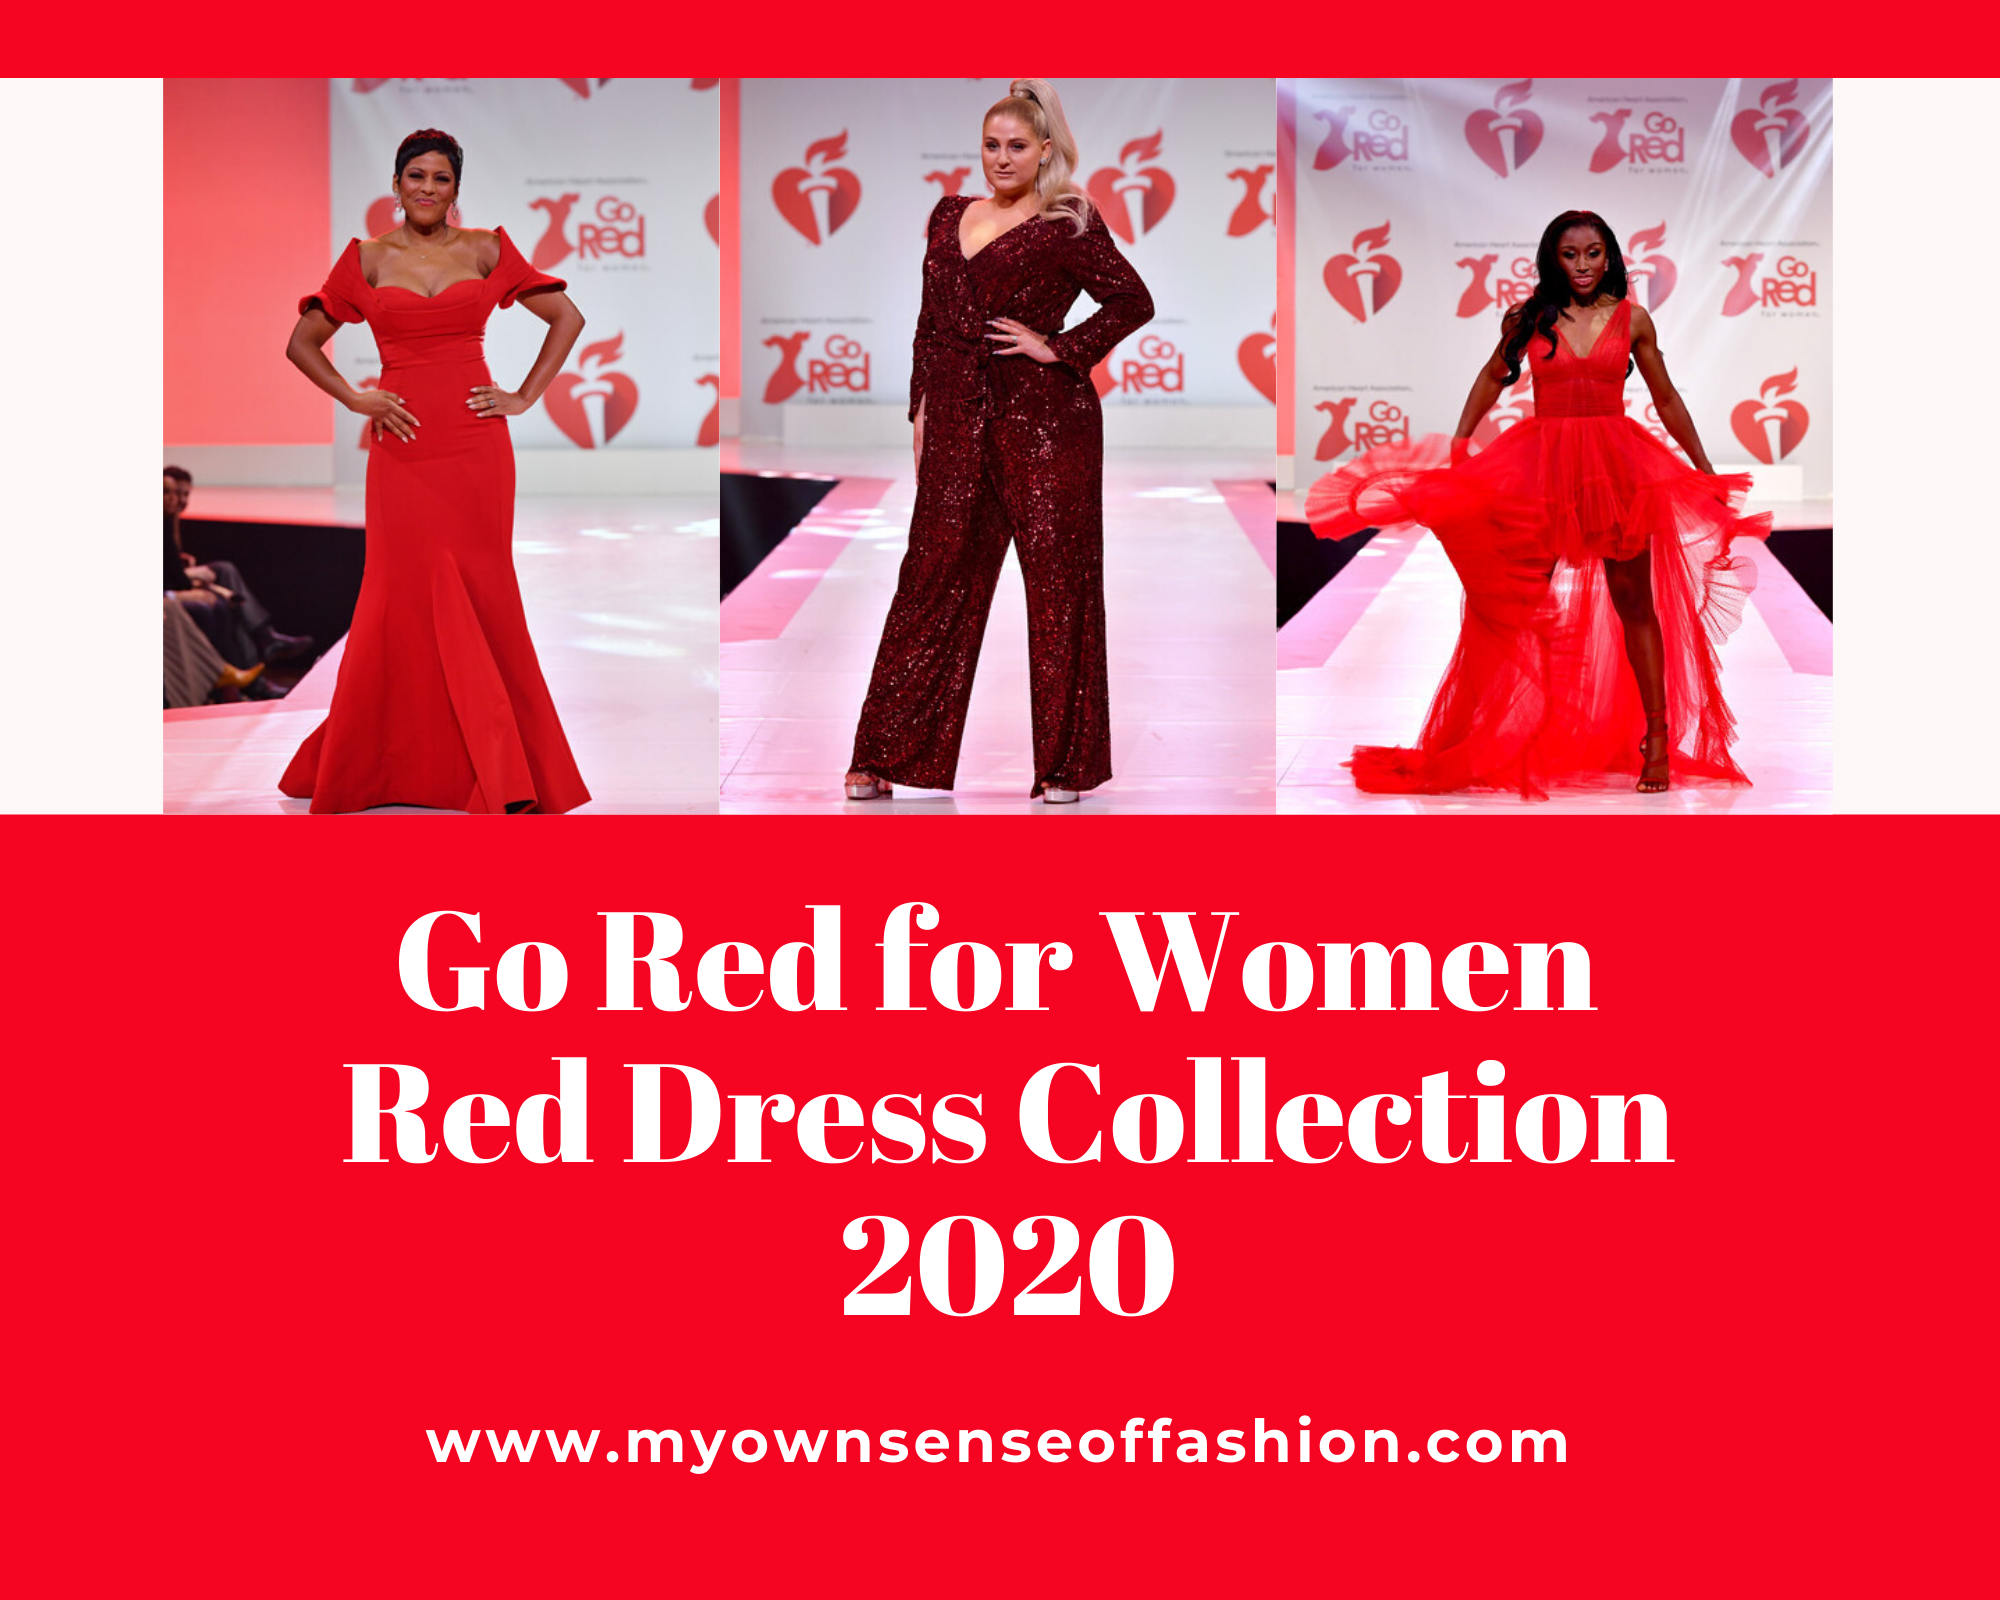 Go Red for Women Red Dress Collection 2020